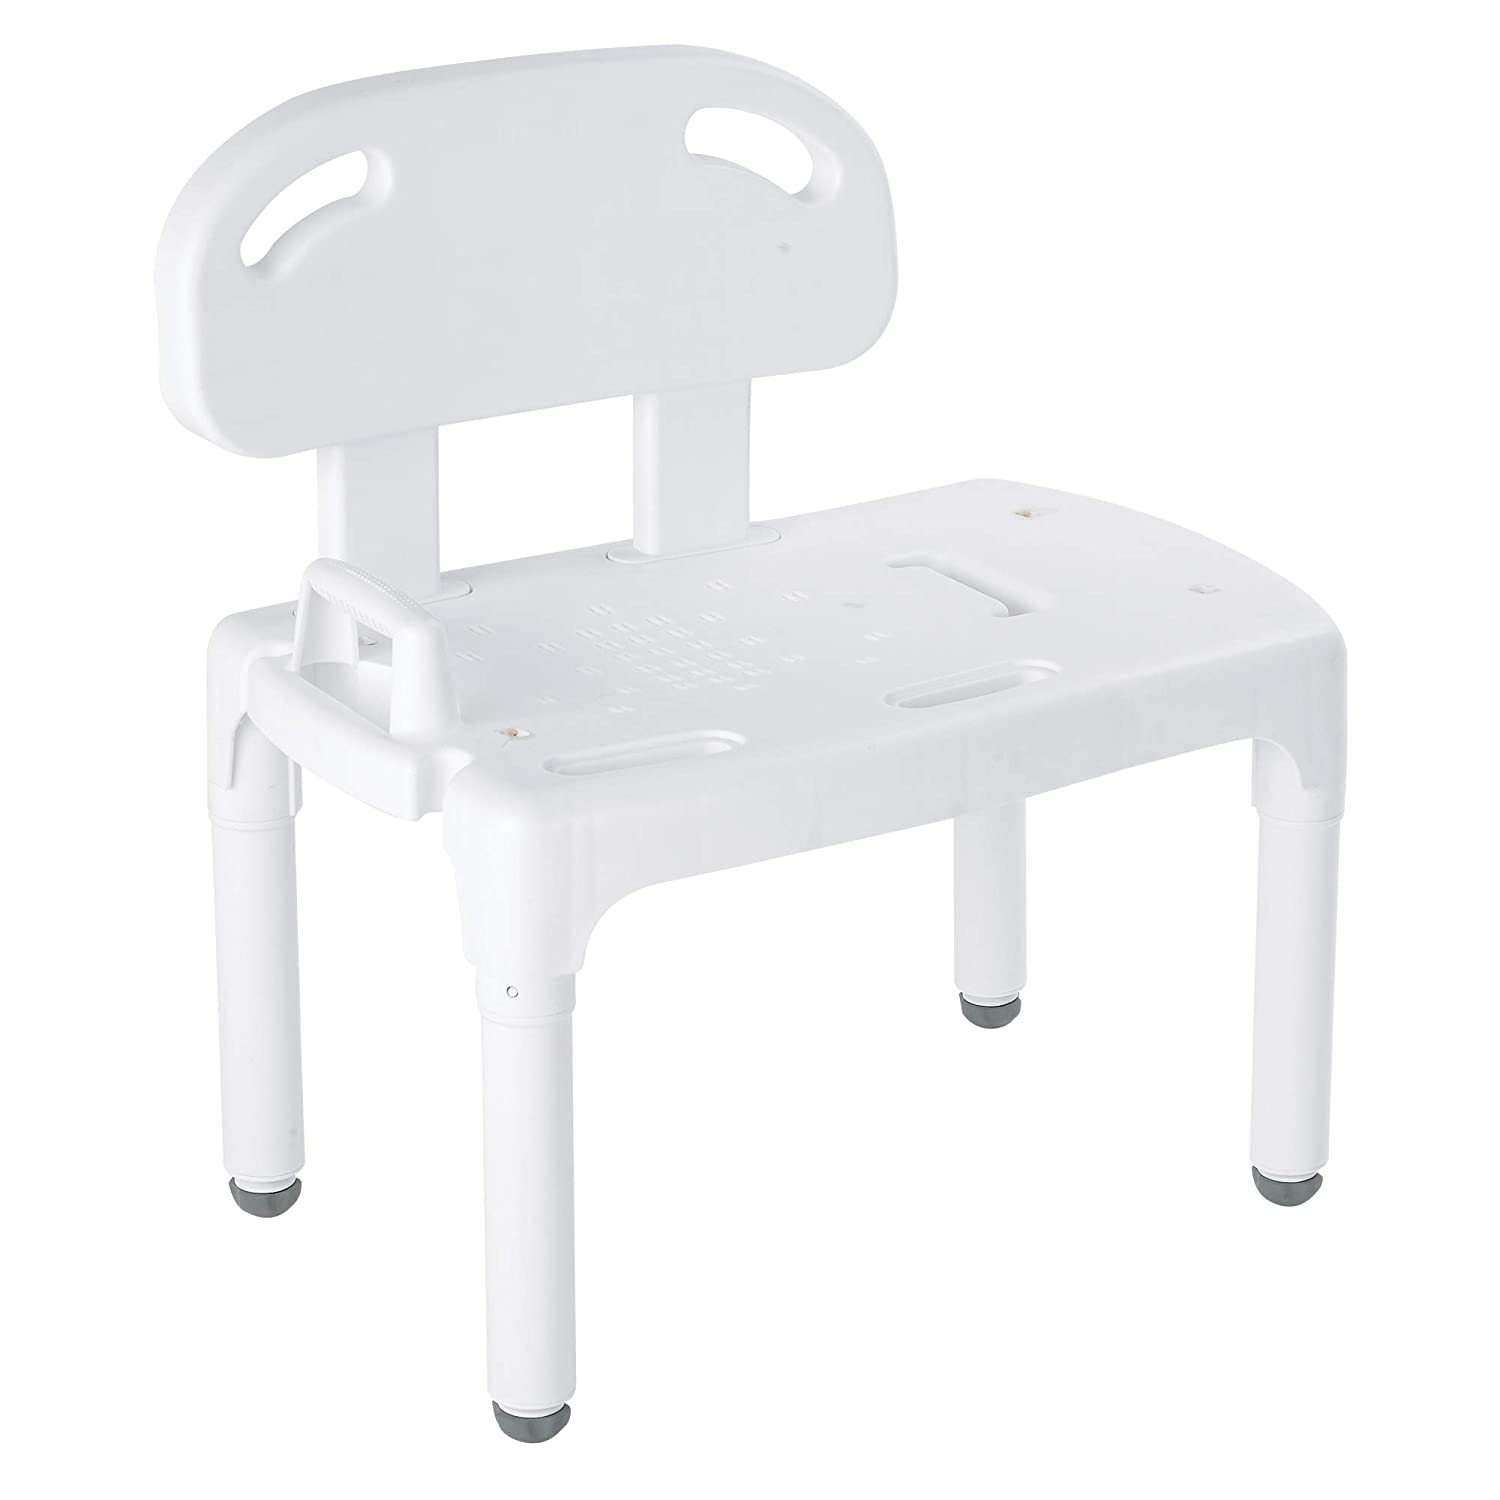 Carex Universal Transfer Bench, Bath Transfer Bench with Exact Level Adjustable Legs, Convertible to Right or Left Hand Entry   B000AEGCOO